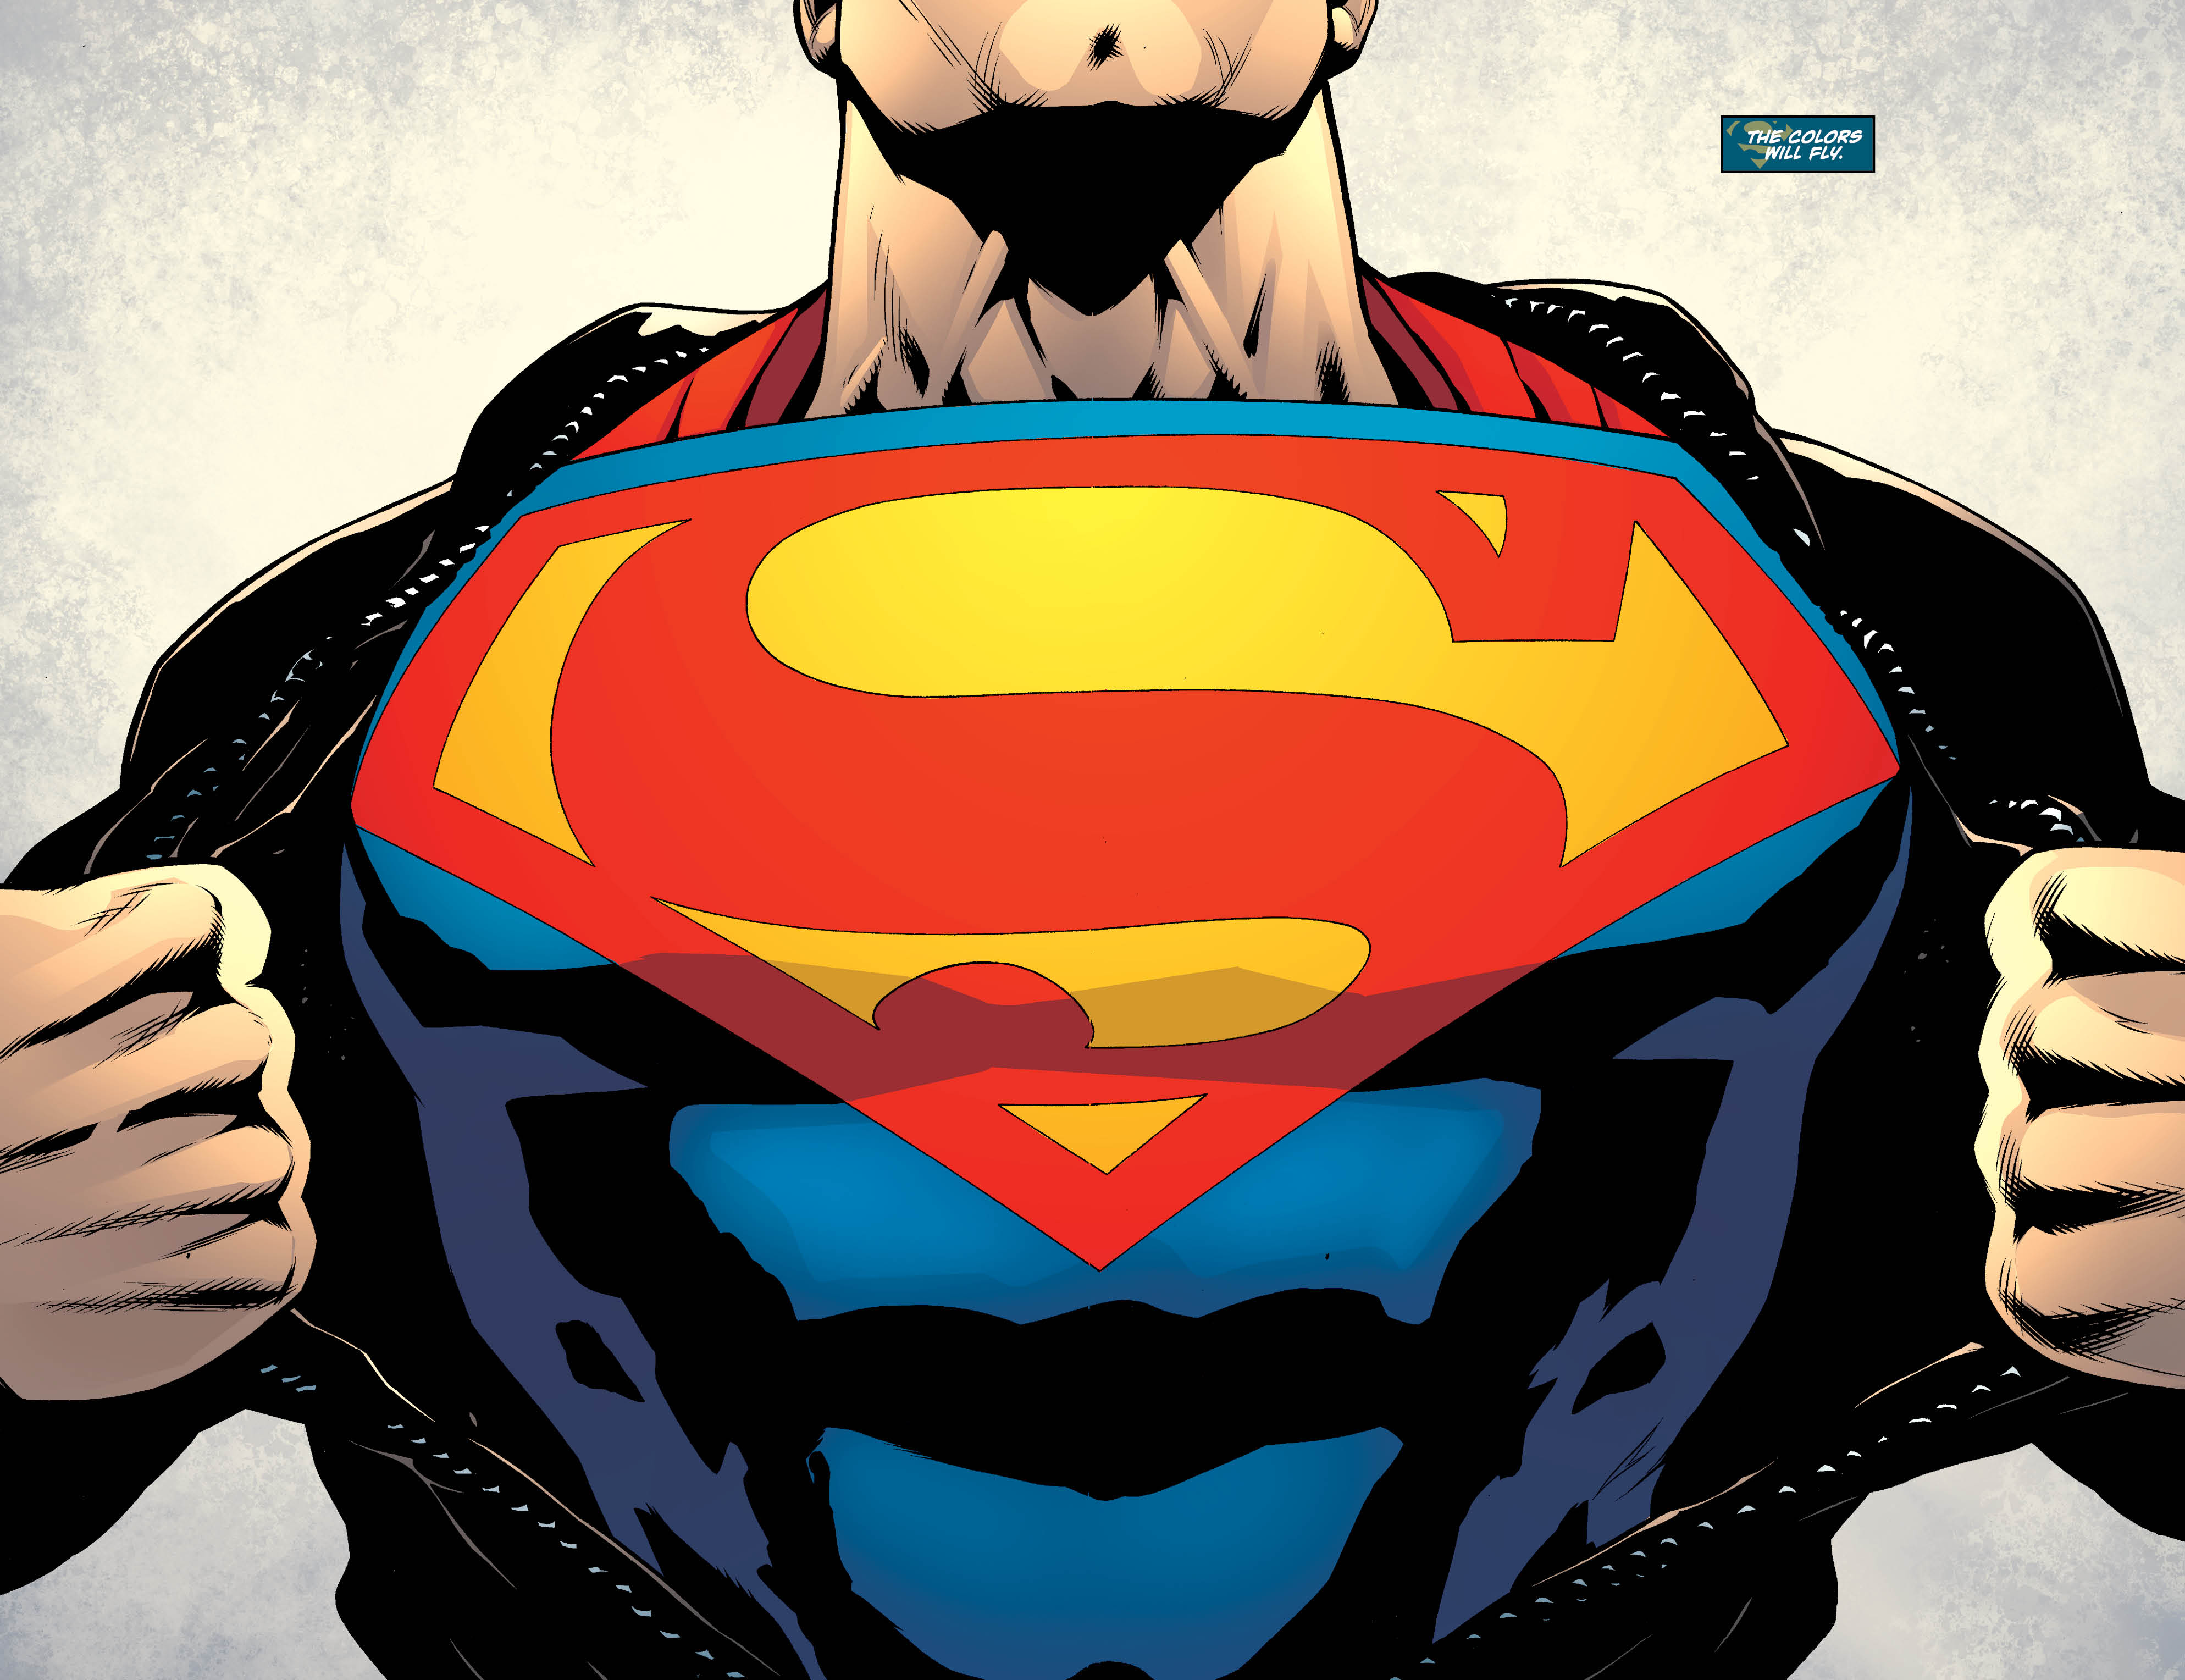 Alex: Absolutely. I Think That, While I Am Not As Sold On The Direction Of  Action Comics As You Were, Kyle, The Decision To Create What Appears To Be  A ...